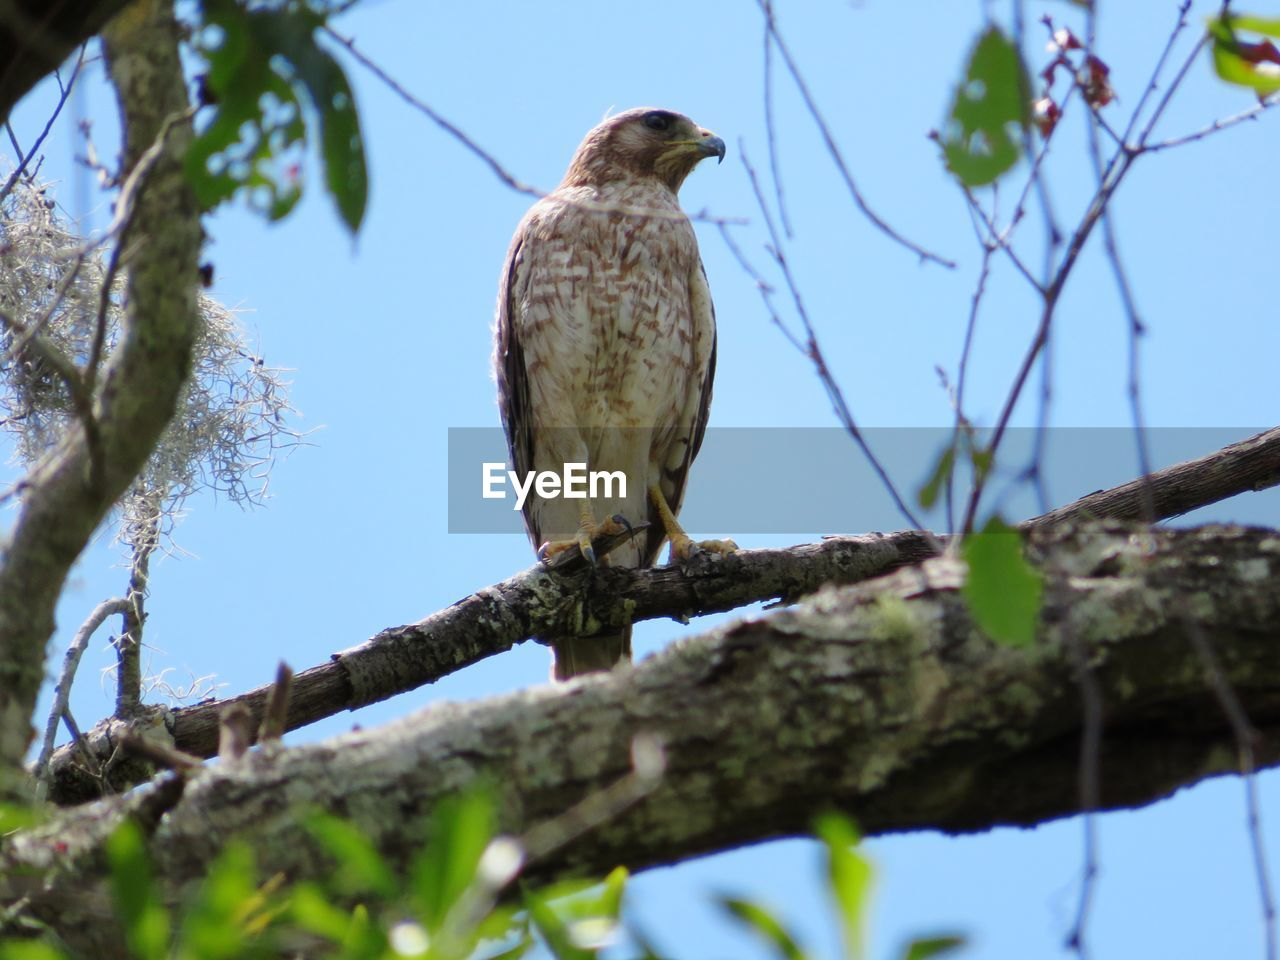 low angle view, tree, perching, bird, animal themes, vertebrate, animals in the wild, branch, animal, plant, one animal, animal wildlife, nature, selective focus, sky, day, no people, focus on foreground, outdoors, bird of prey, eagle